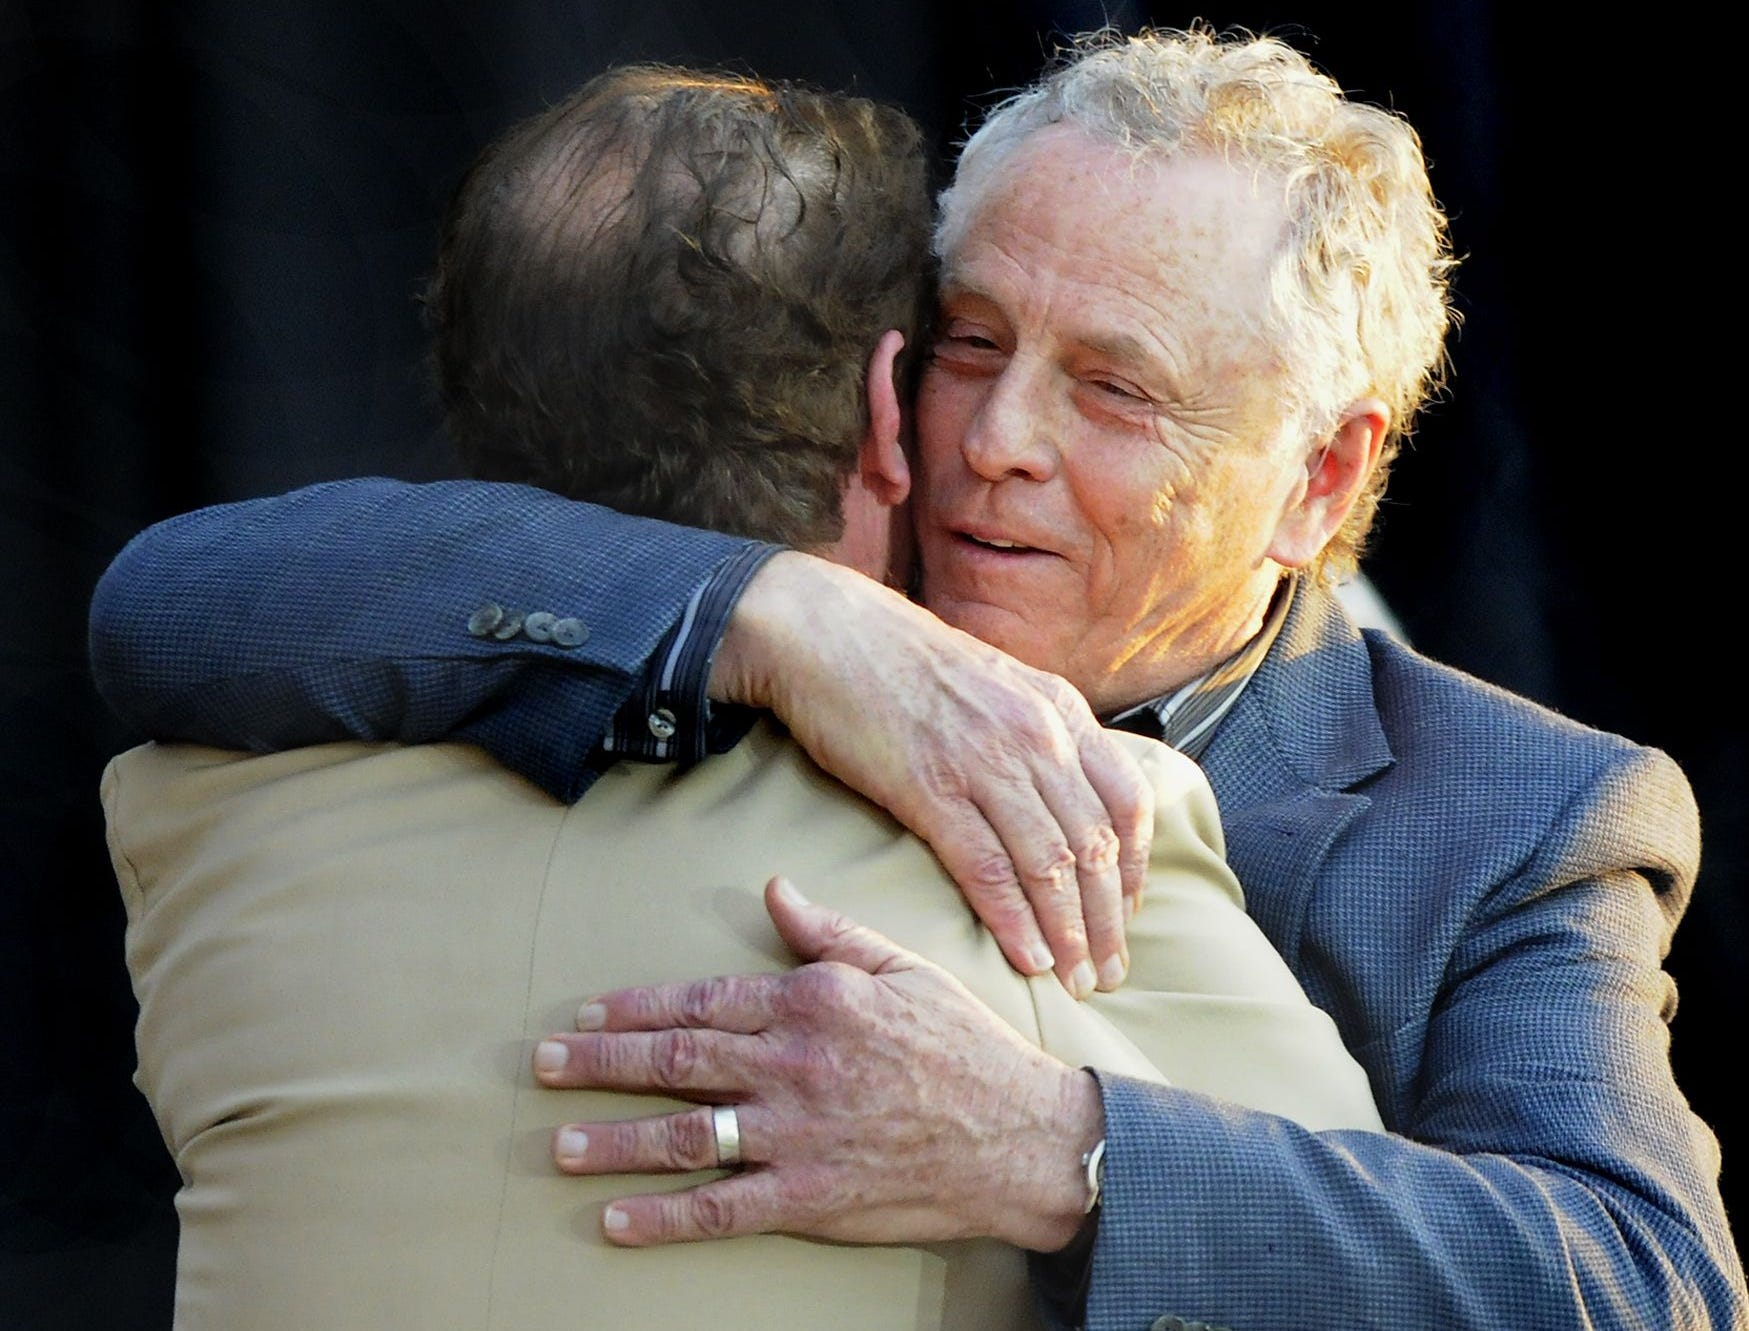 Morris Dees hugs supporter Donald McGrath at the Southern Poverty Law Center's 40th Anniversary Celebration on Saturday April 30, 2011 at the Civil Rights Memorial Center in Montgomery, Ala.(Montgomery Advertiser, Mickey Welsh)